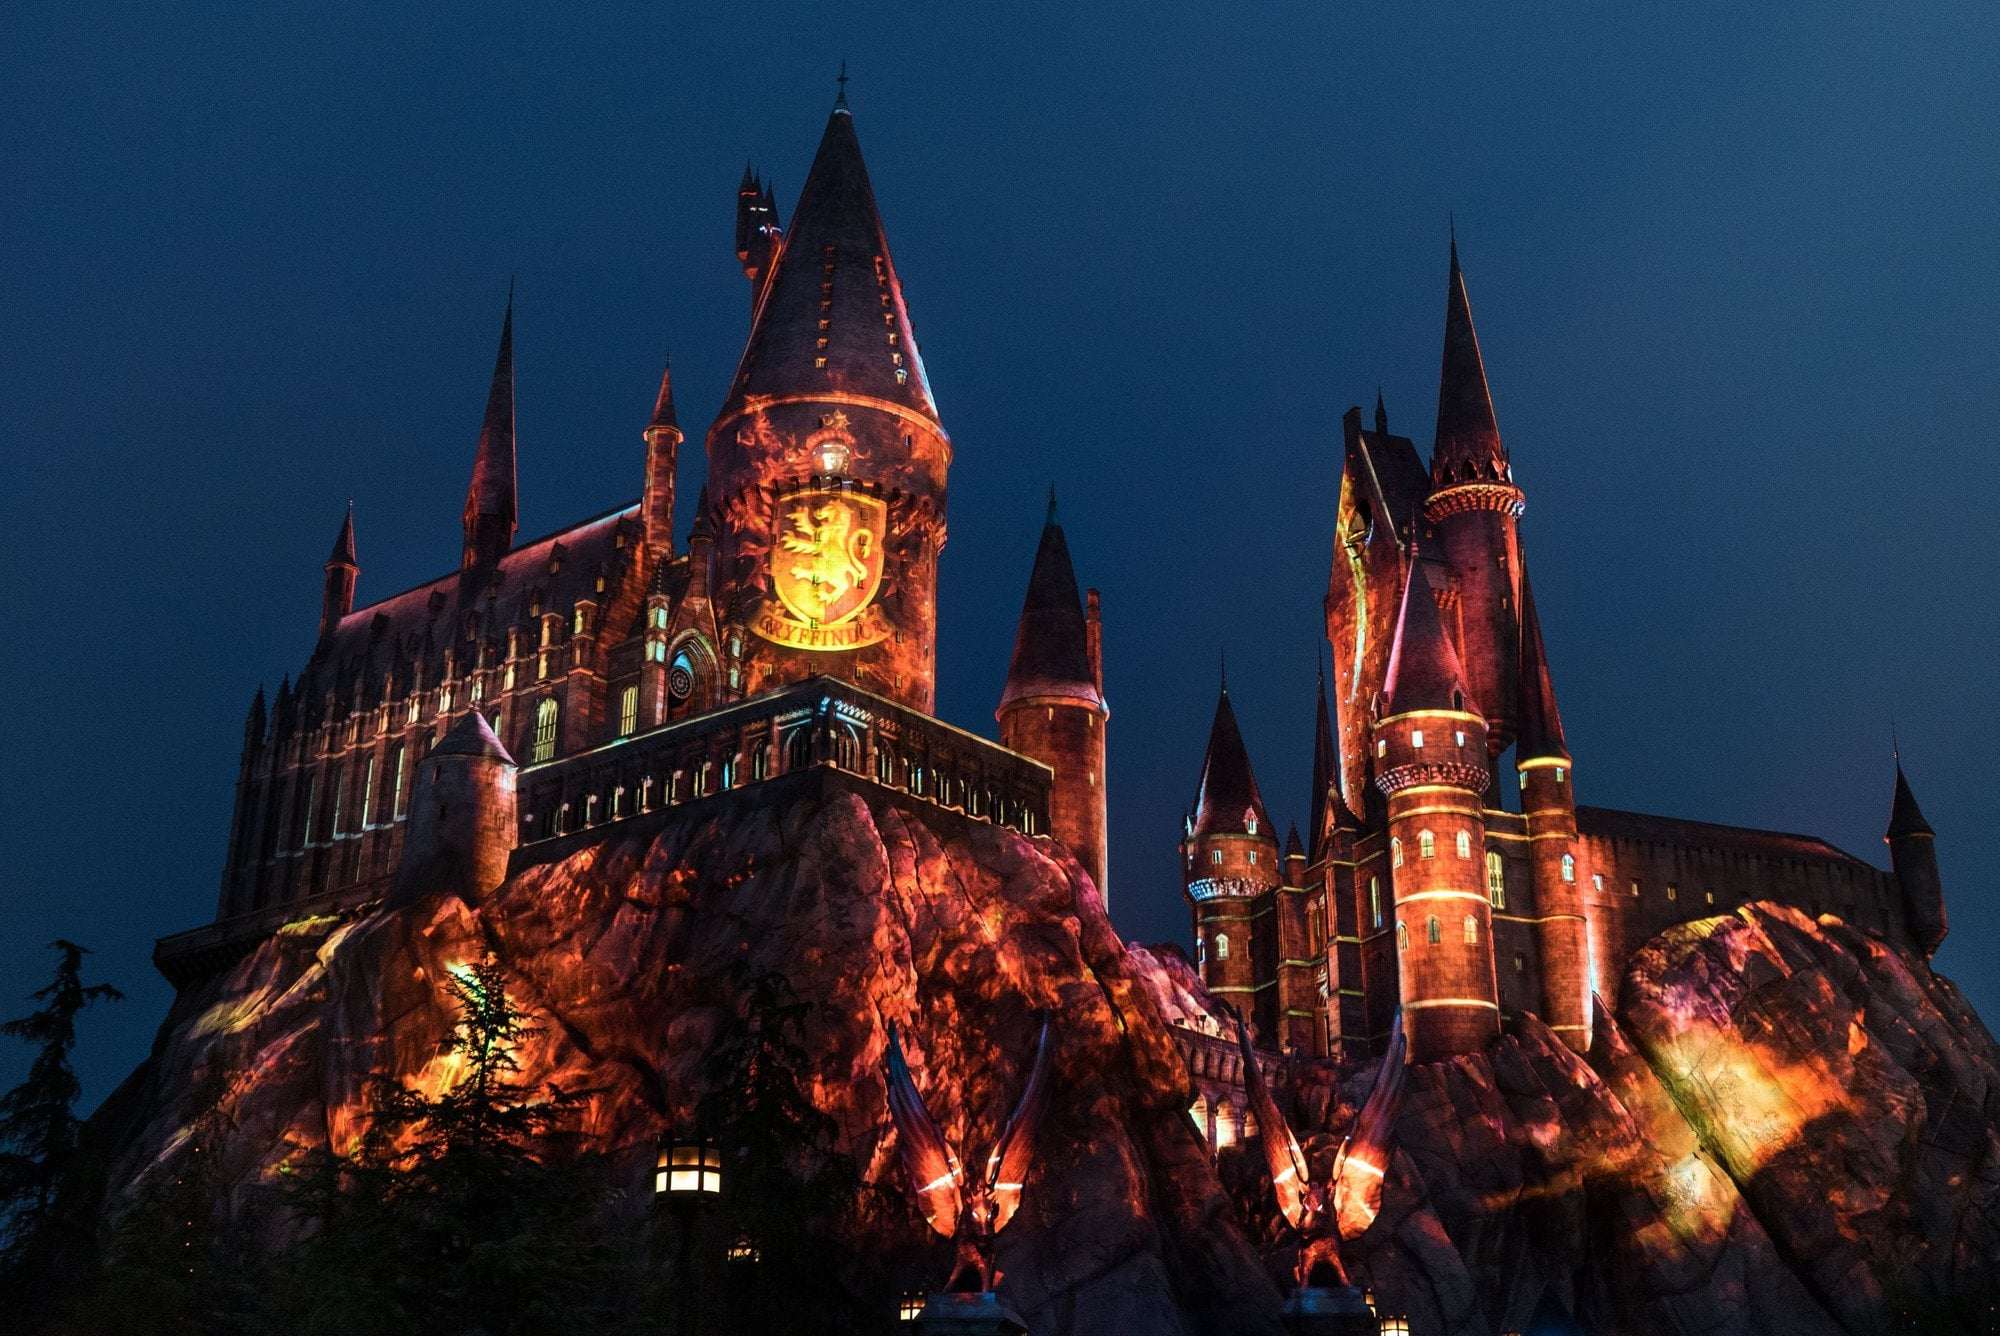 The Nighttime Lights at Hogwarts Castle at The Wizarding World of Harry Potter at Universal Hollywood